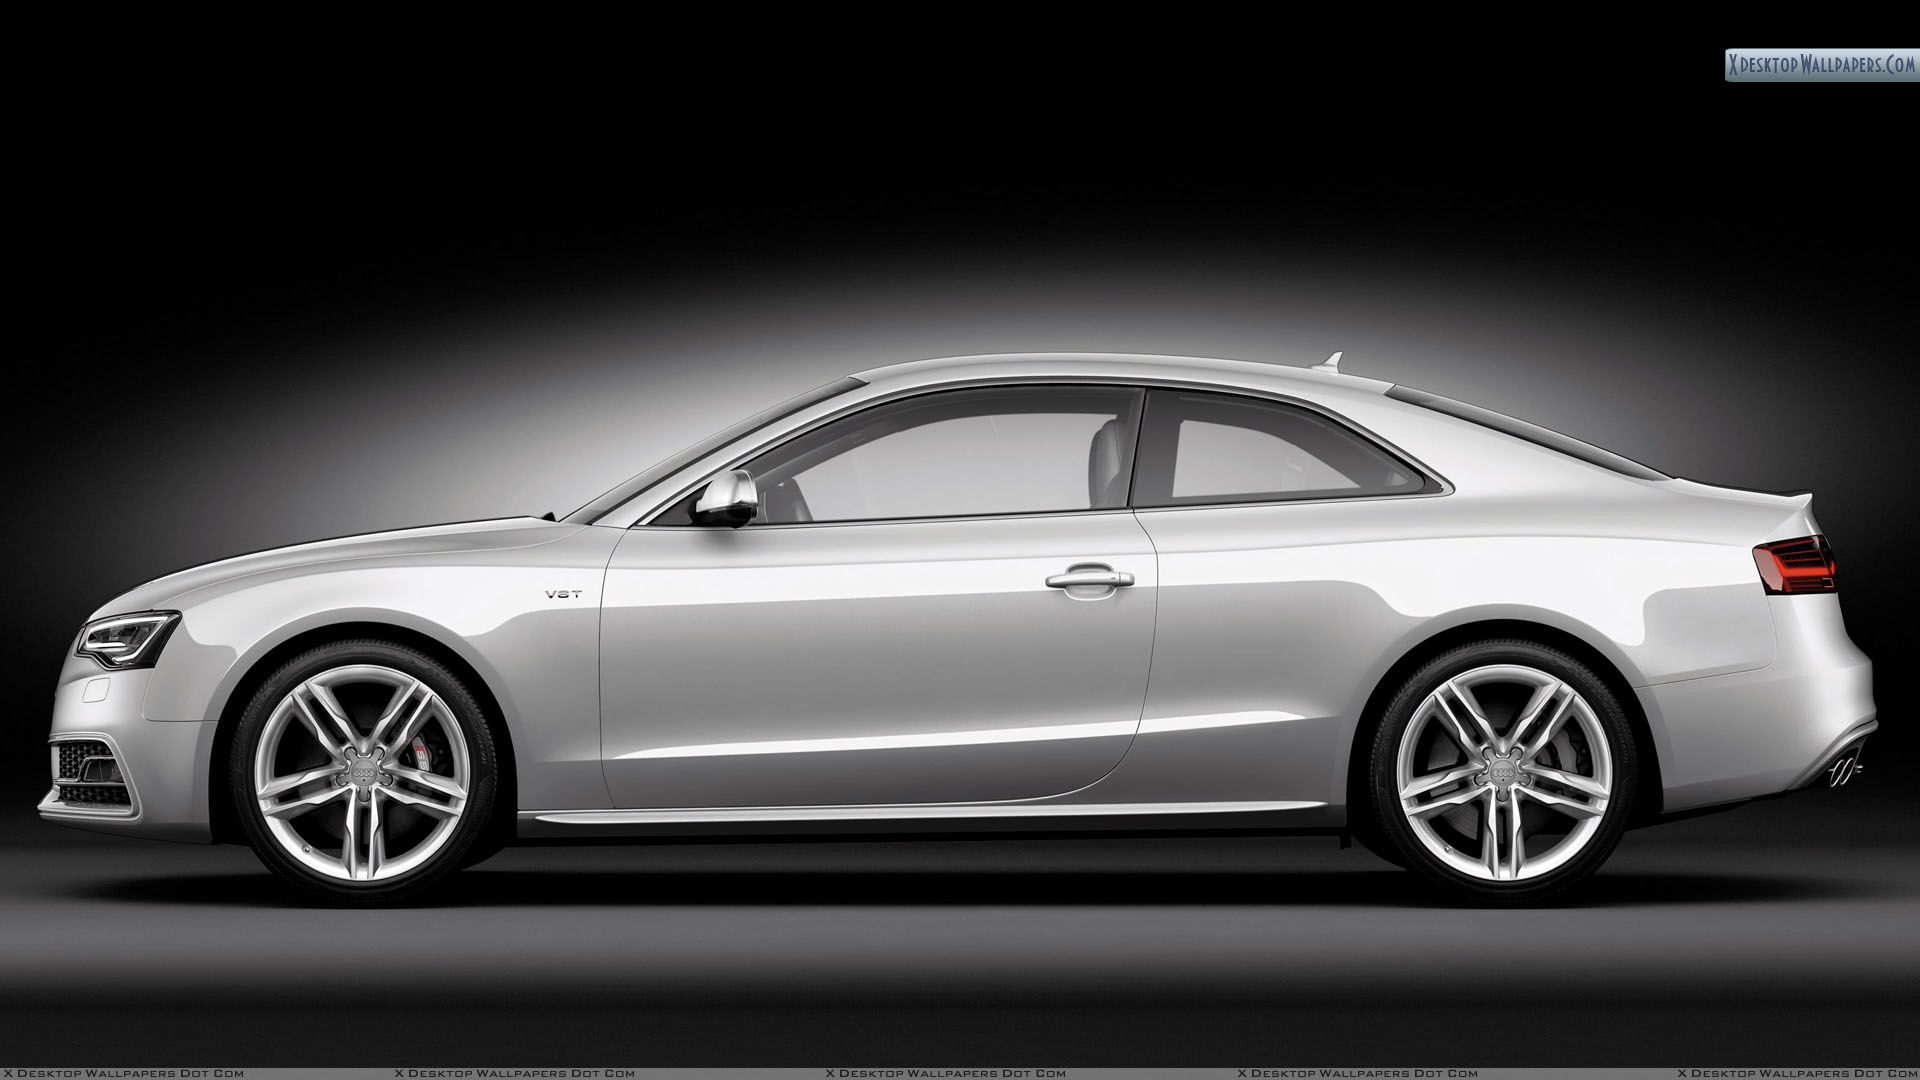 2012 Audi S5 Coupe Side View In Silver Color Audi S5 Audi Audi A5 Coupe